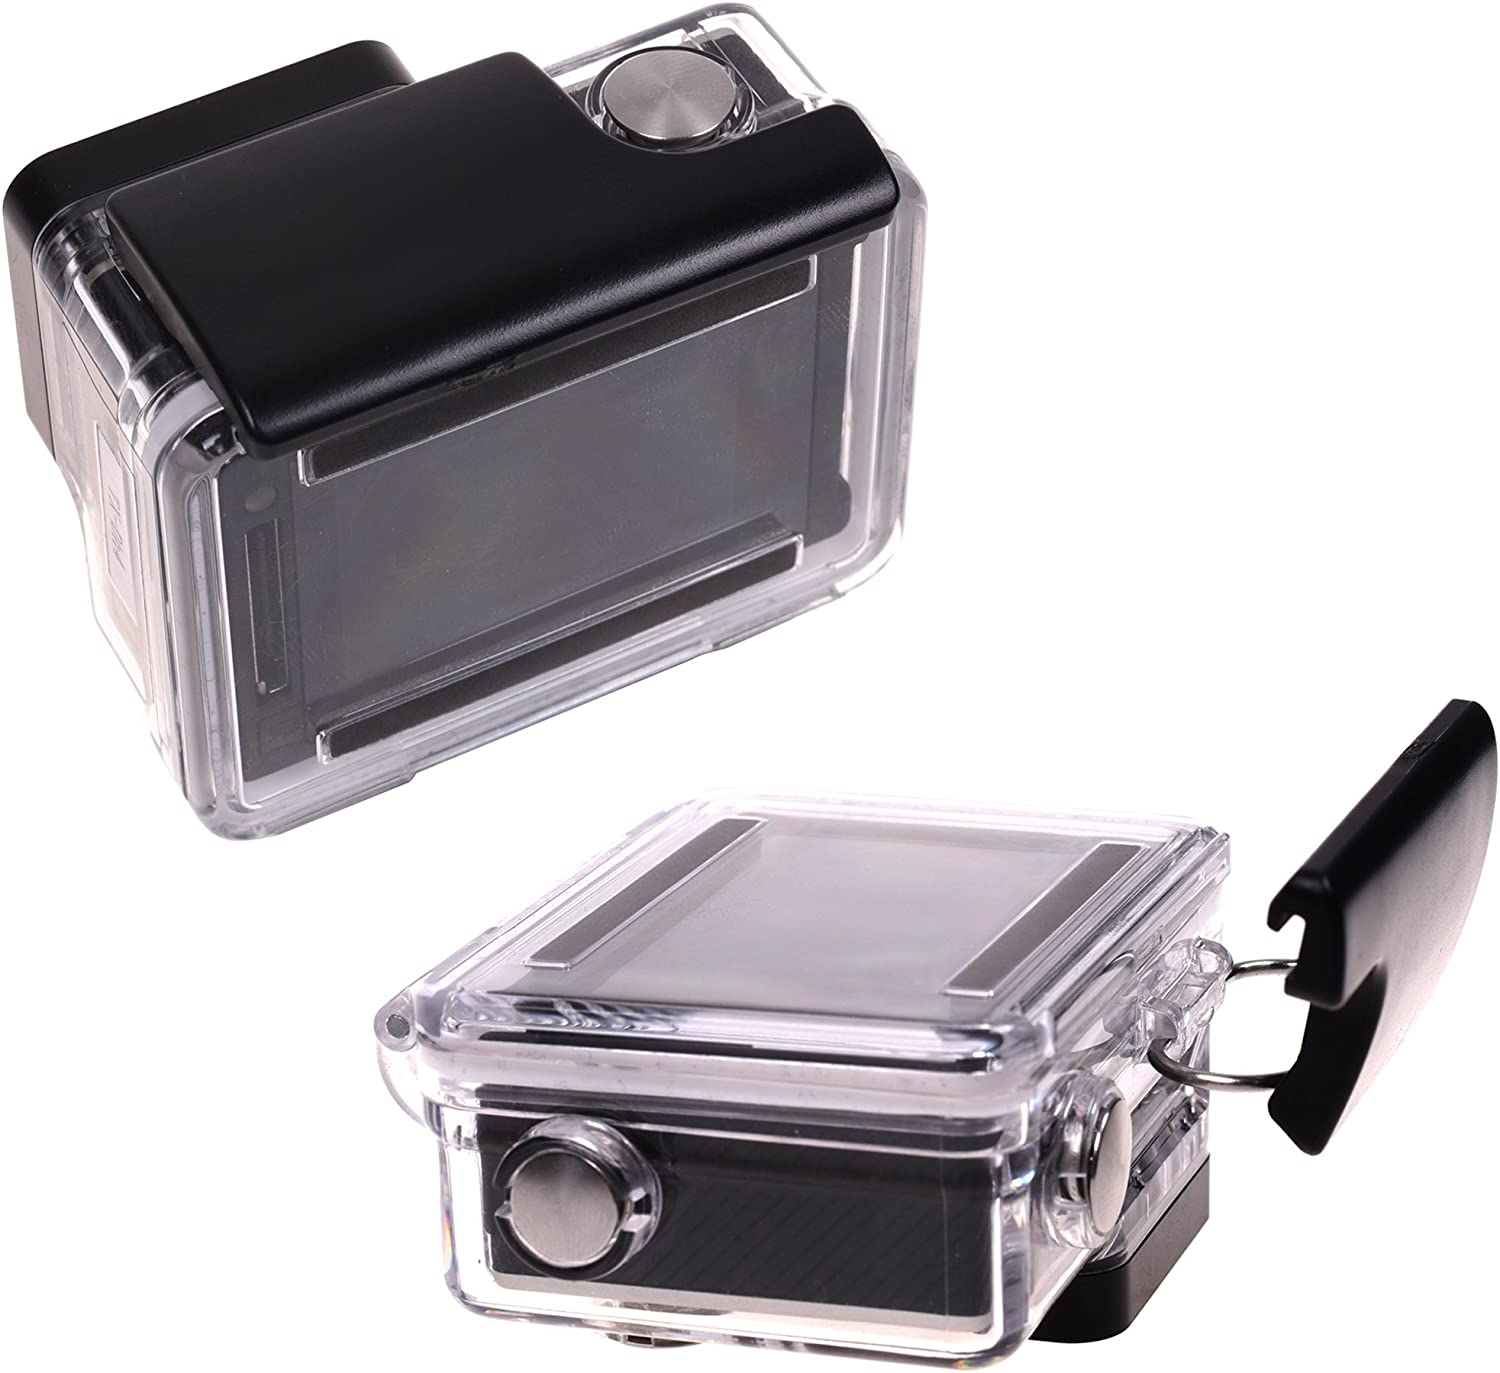 HD Cameras COSMOS 2 PCS Waterproof Housing Latch Replacement Rear Snap Buckle Lock Compatible with Gopro Hero4 Hero3